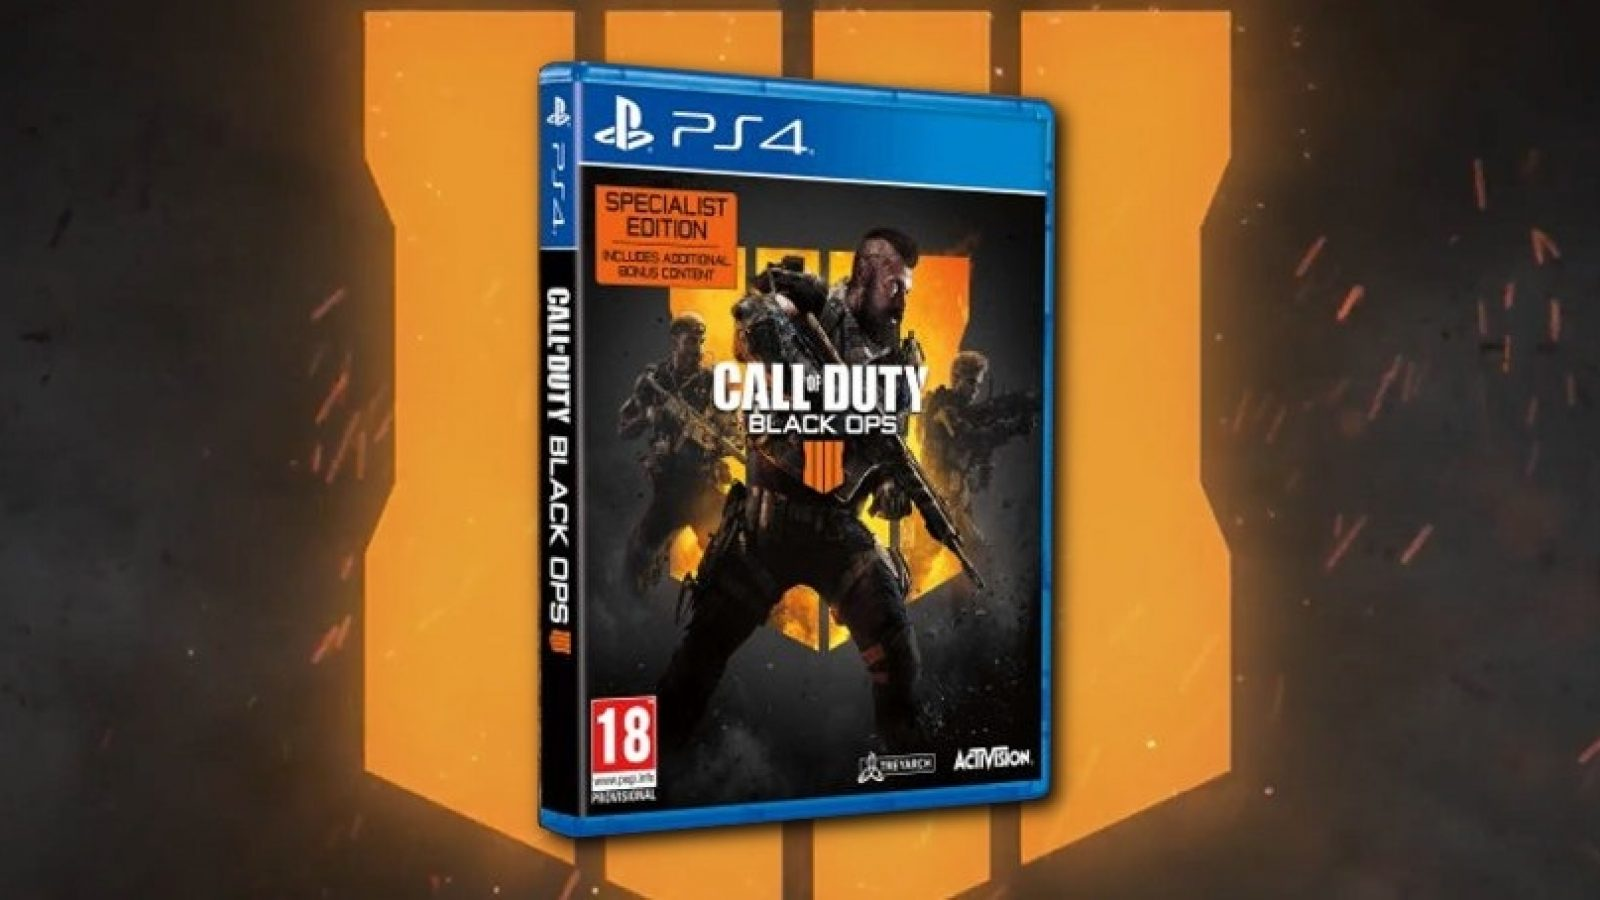 Bonus Content Revealed For Call Of Duty Black Ops 4 Specialist Edition Dexerto